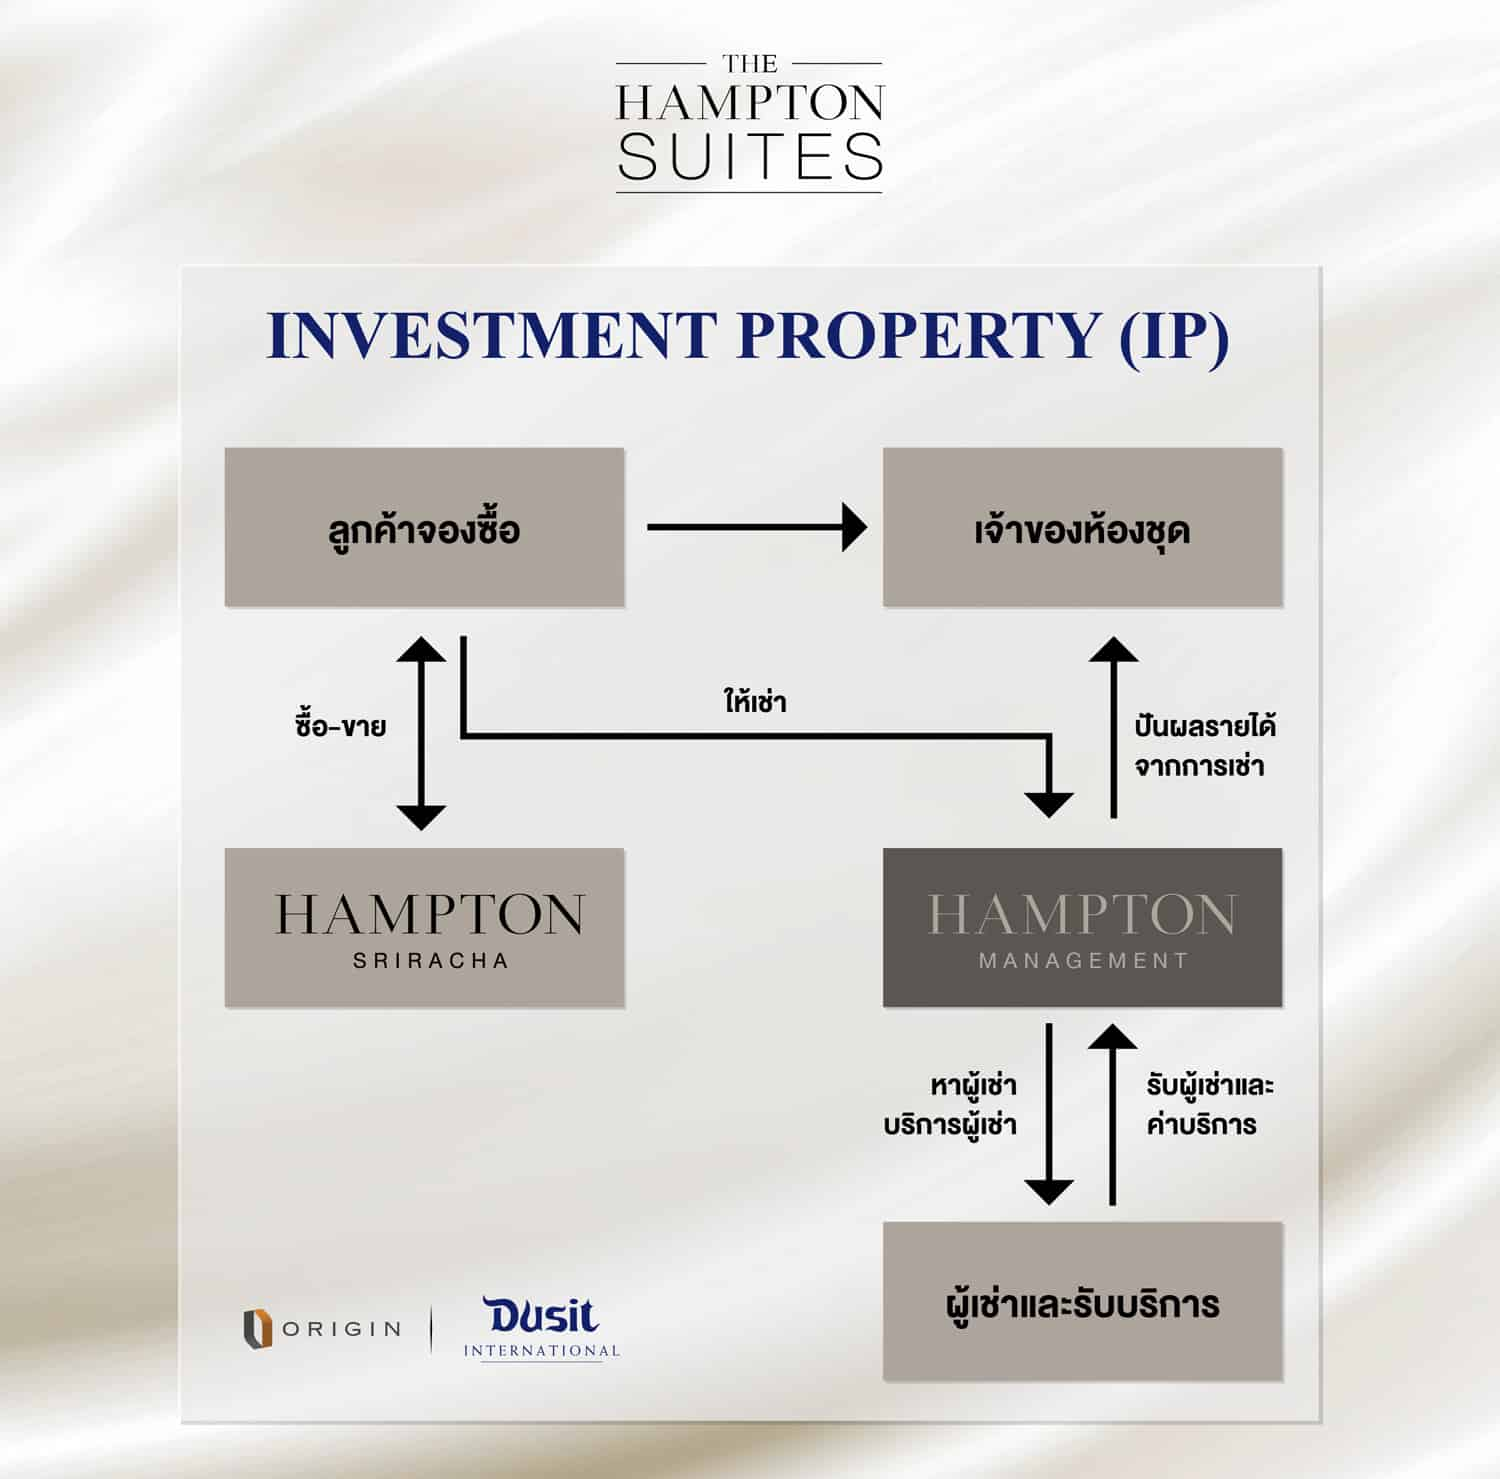 Investment Property (IP)